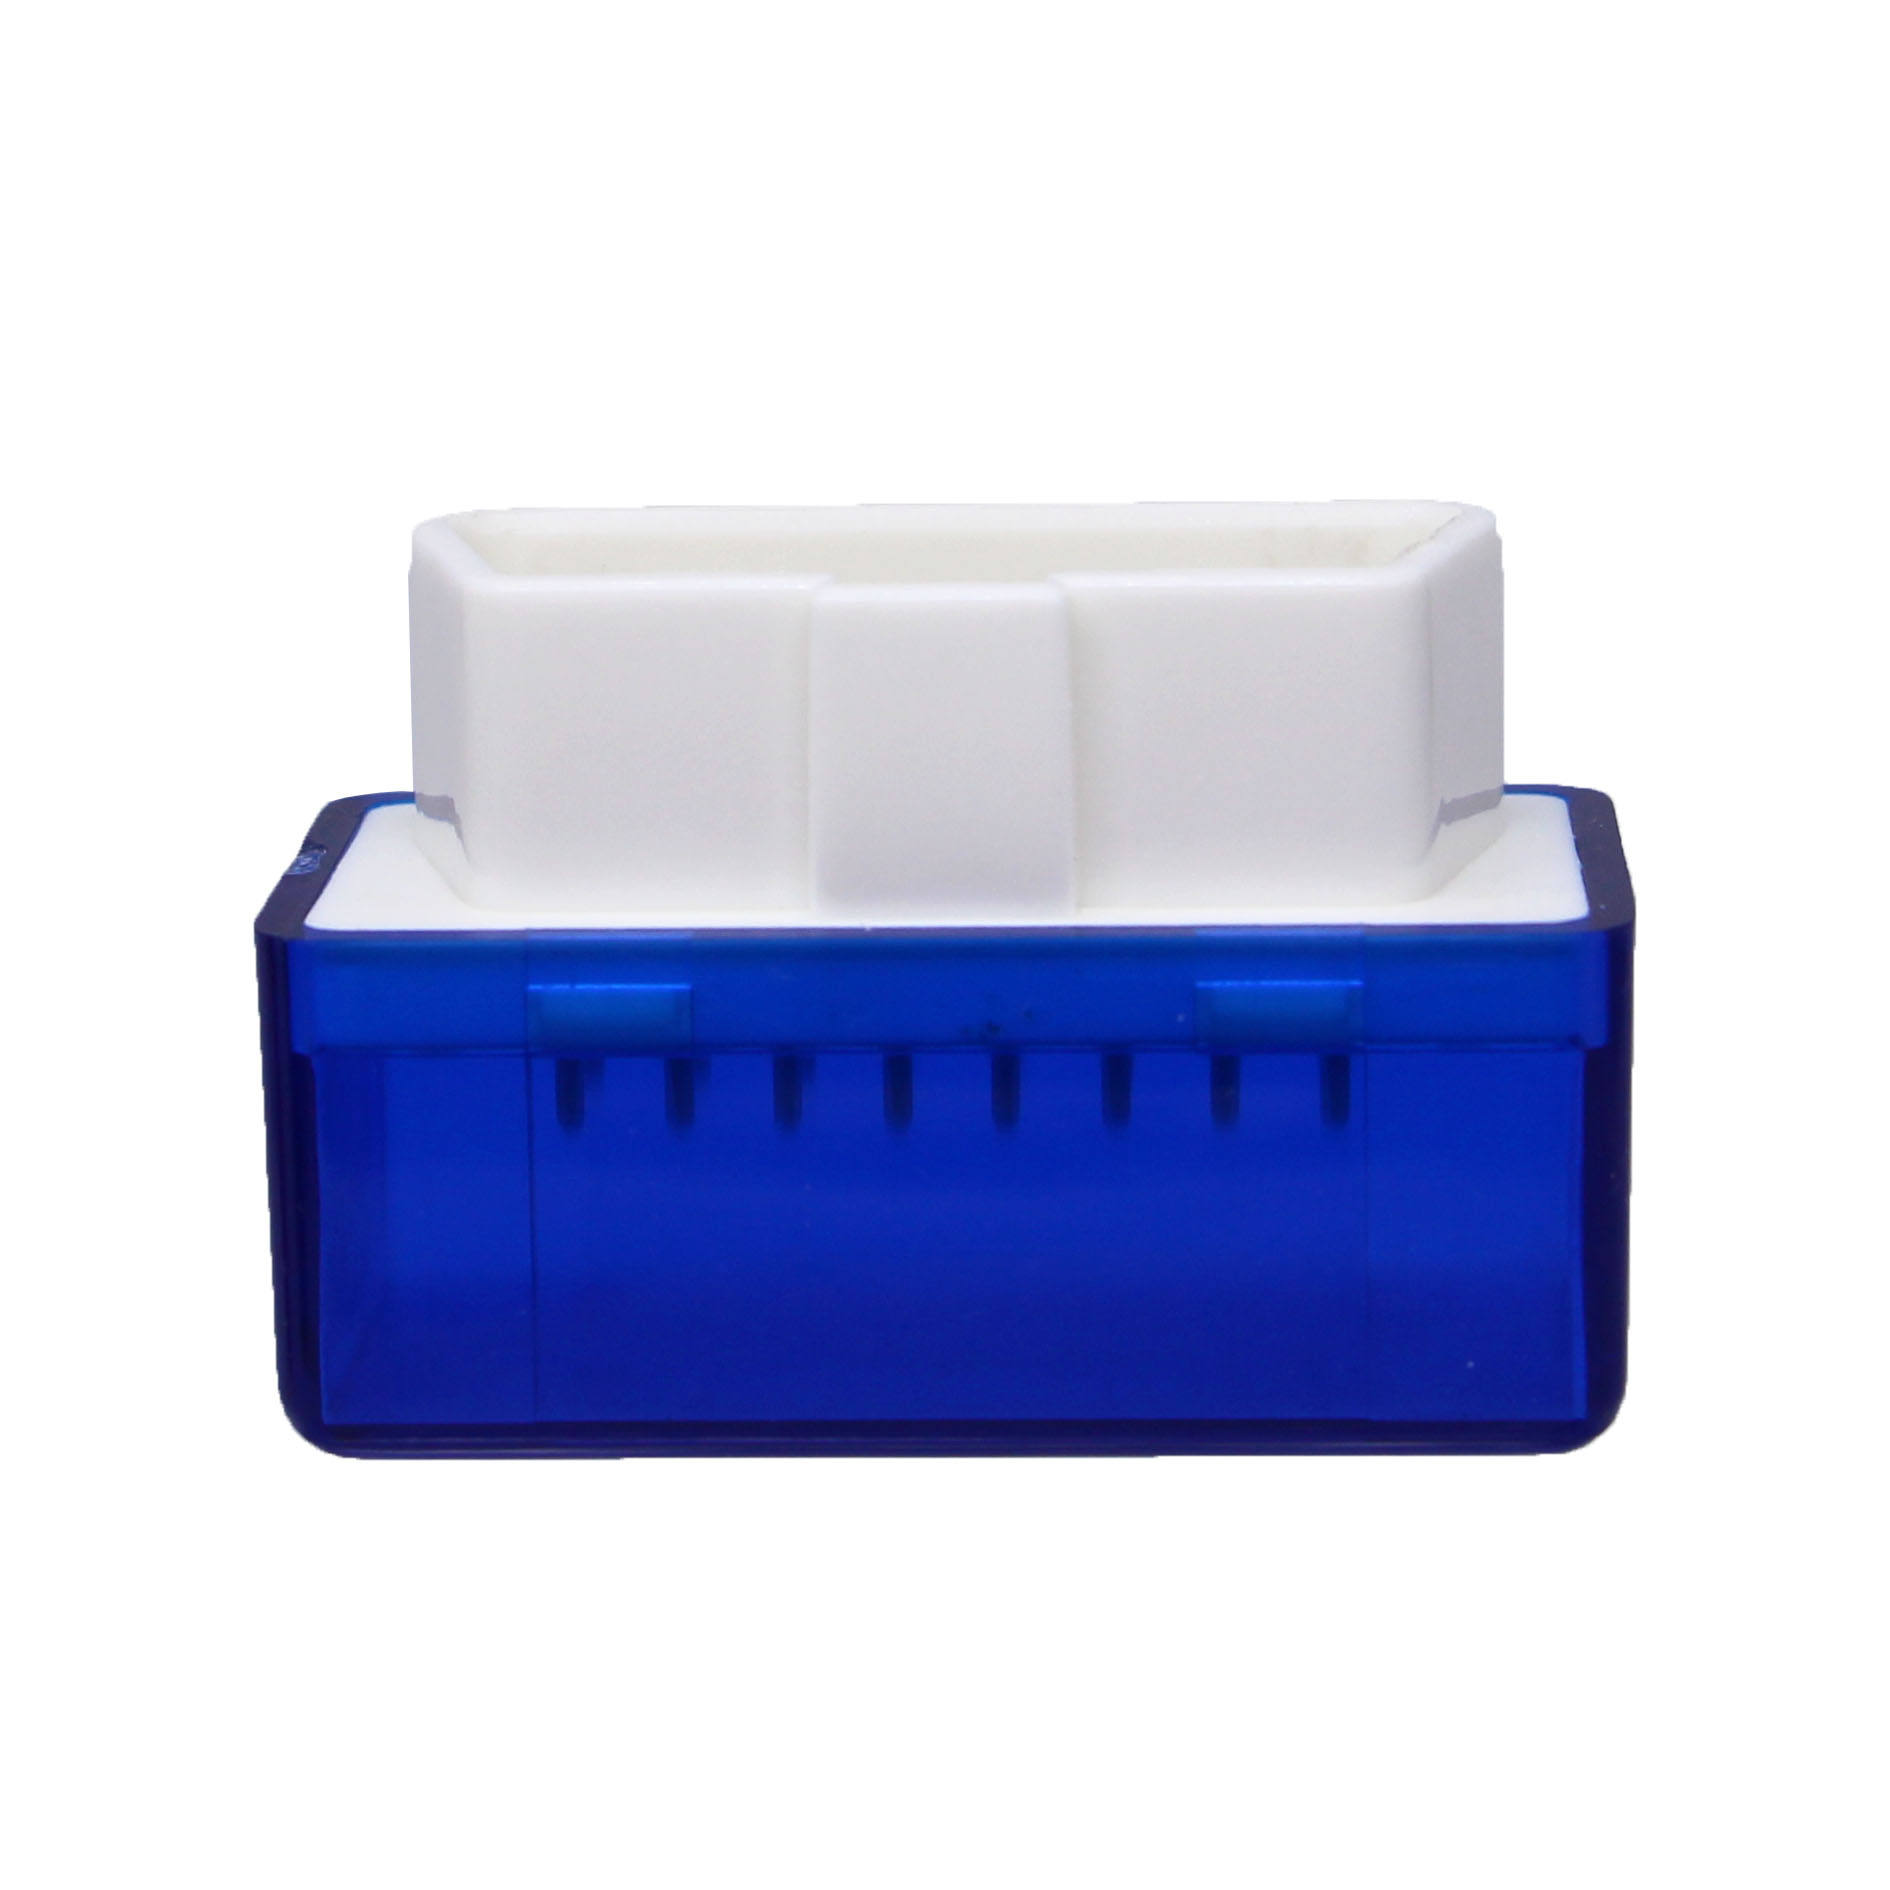 MINI ELM327 Bluetooth OBD2 V1.5 conector